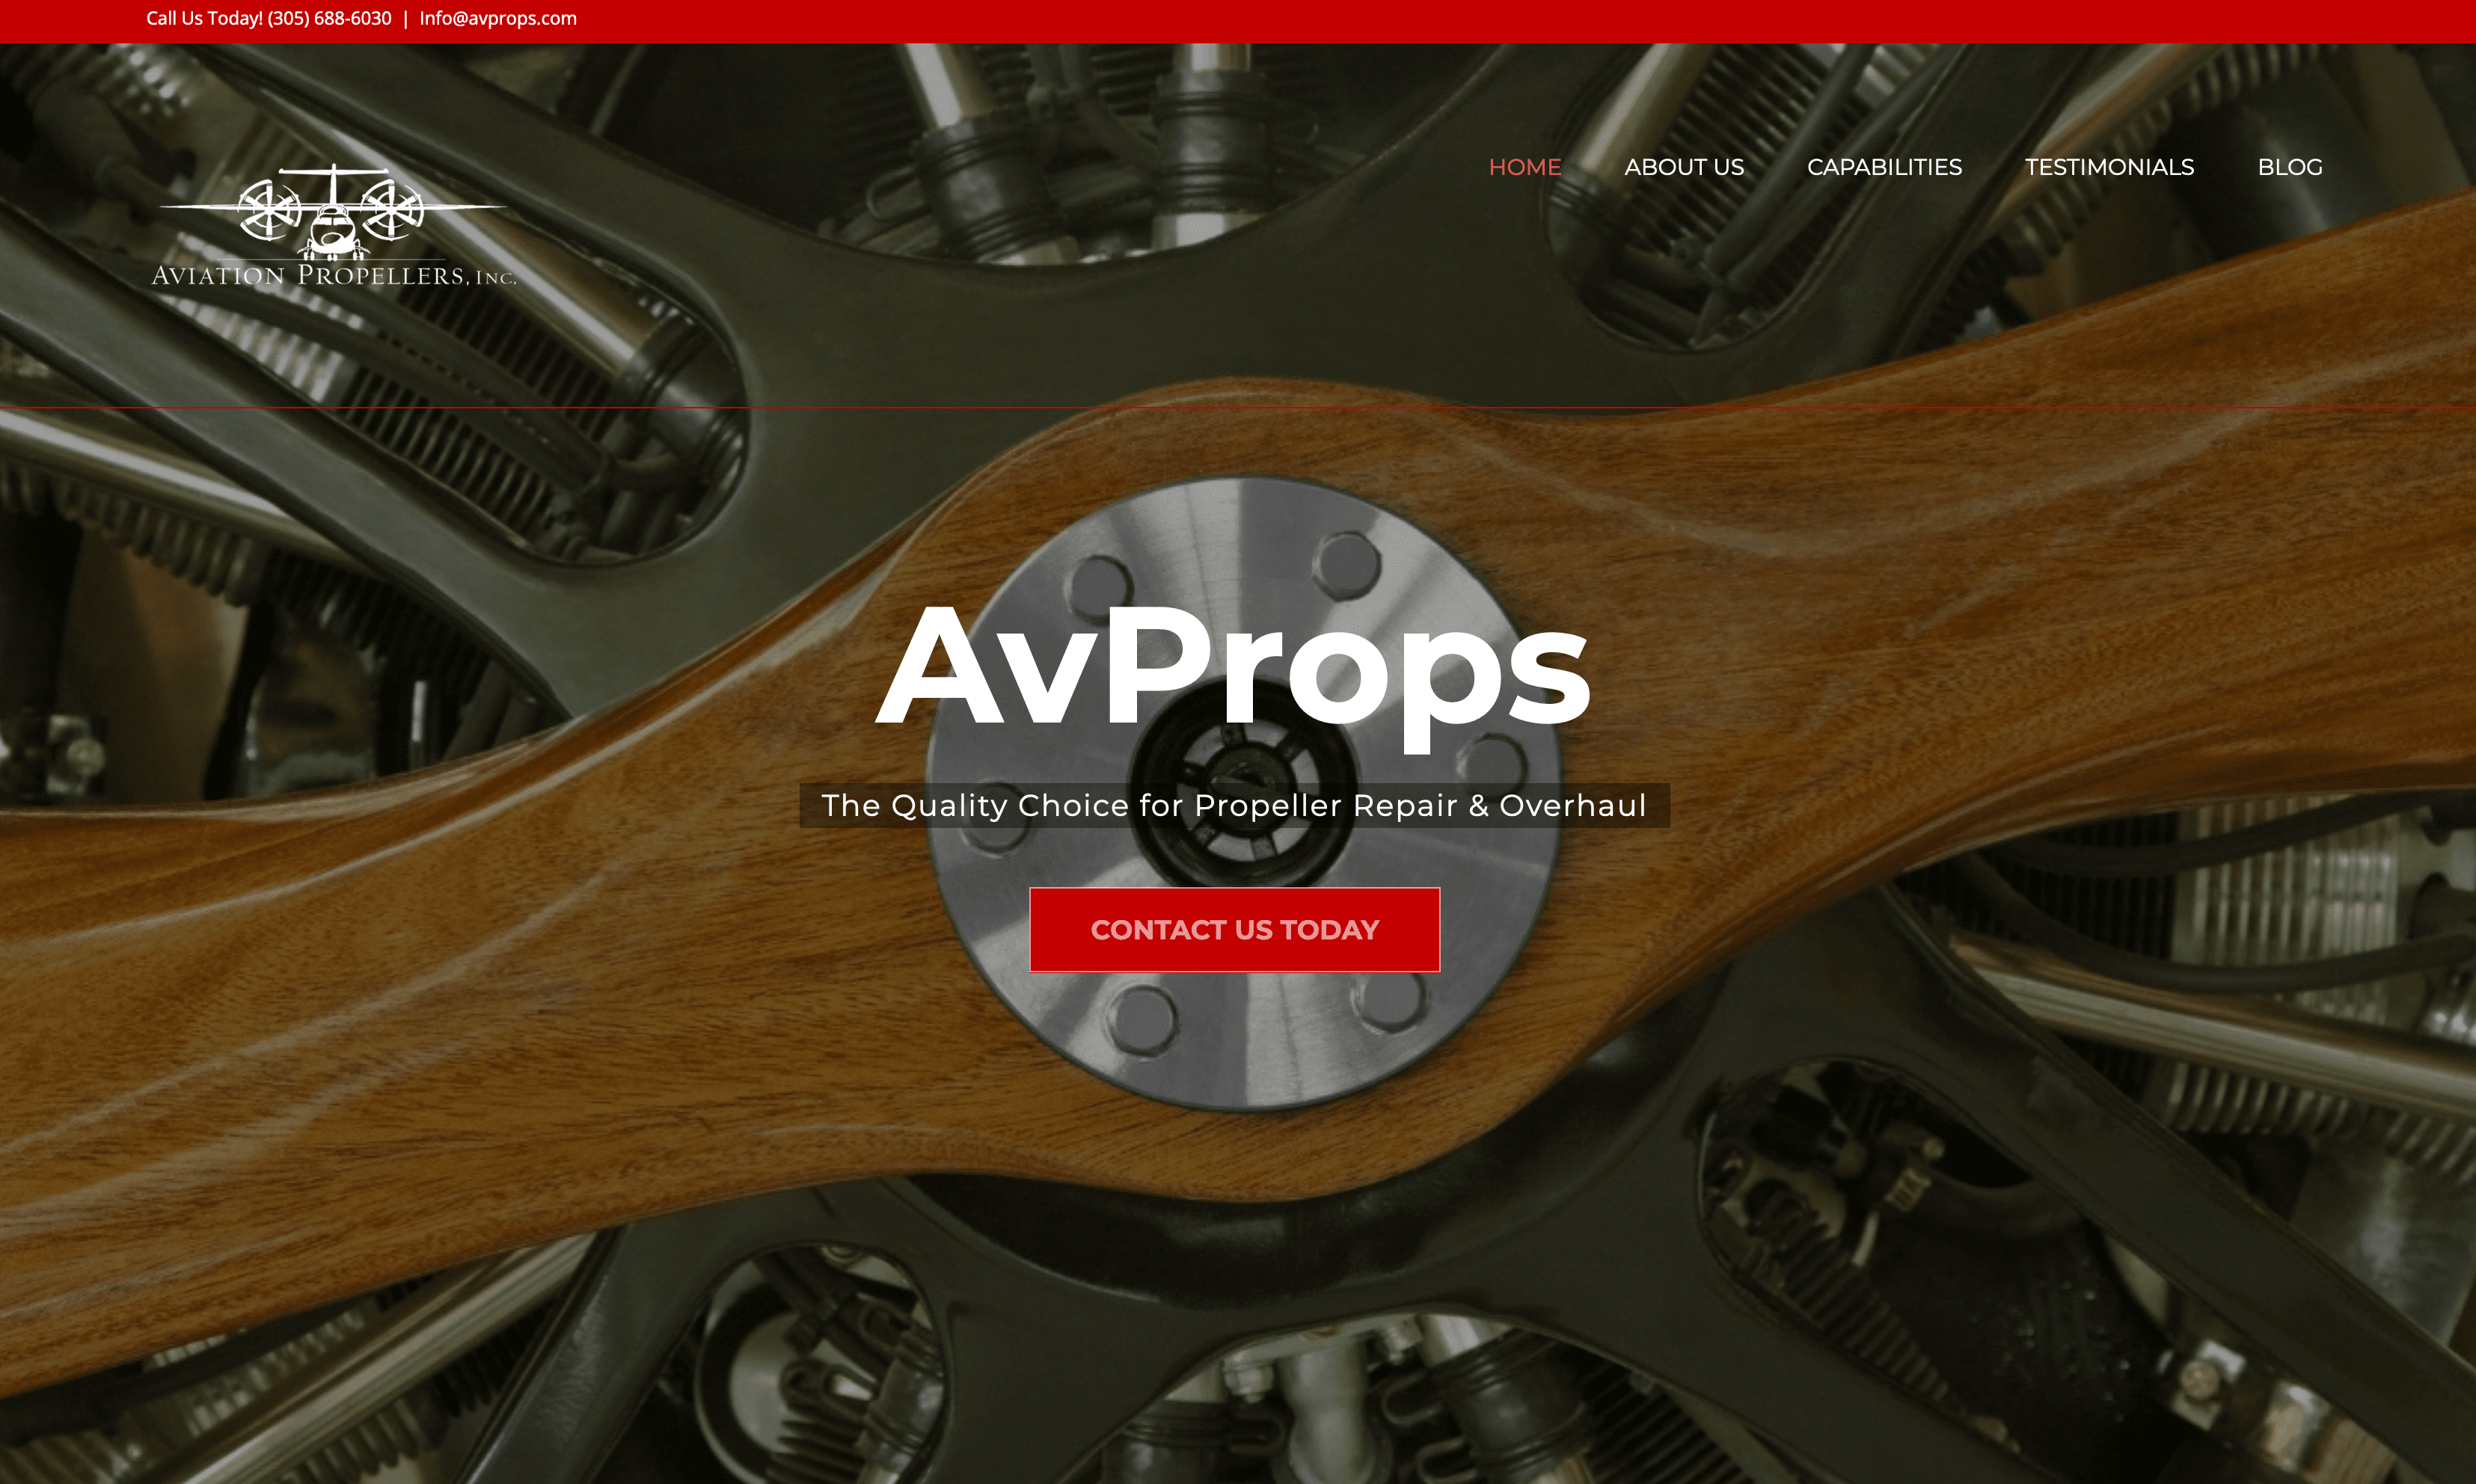 Aviation Propellers Web Site